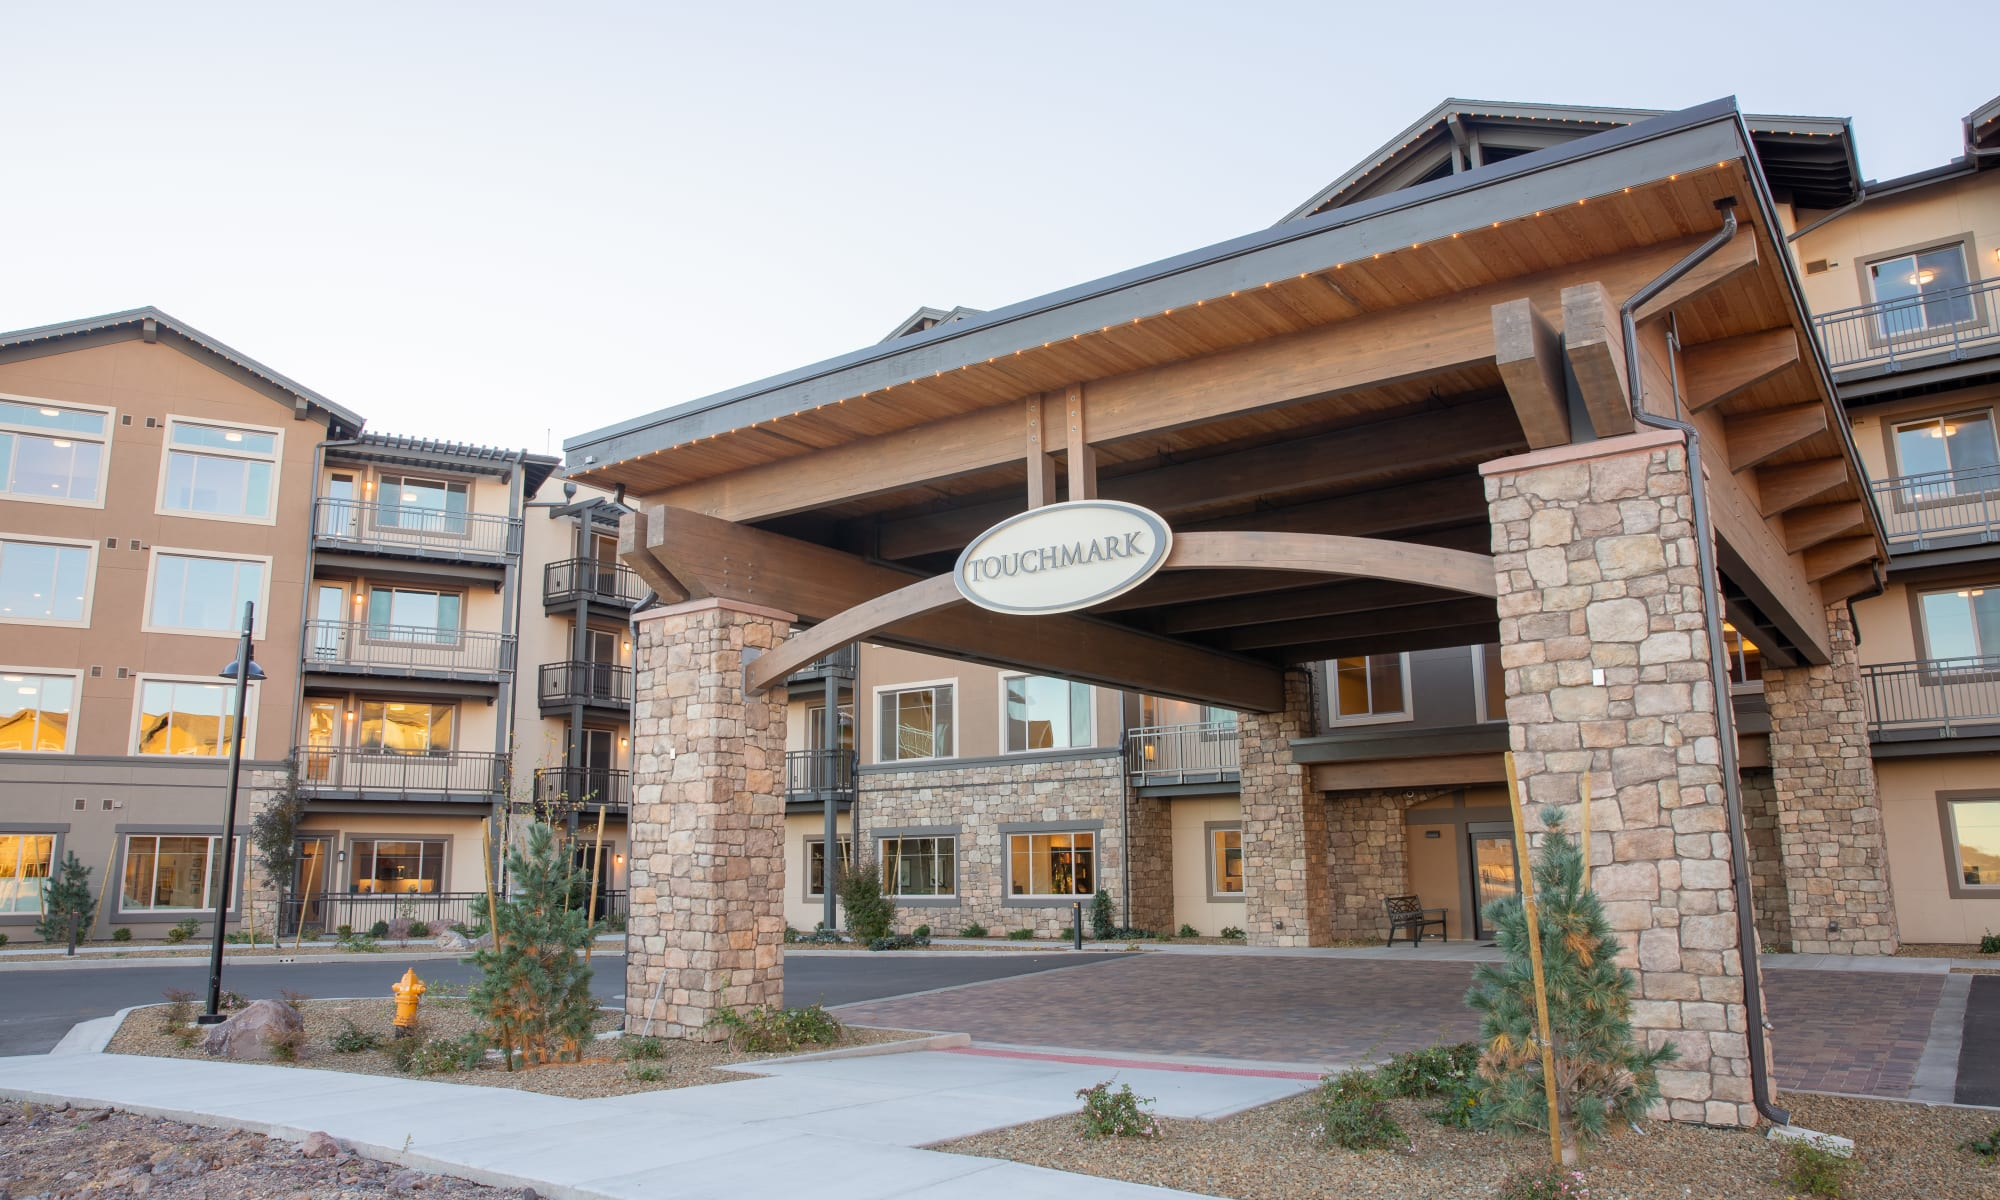 The main entrance at Touchmark at The Ranch in Prescott, Arizona